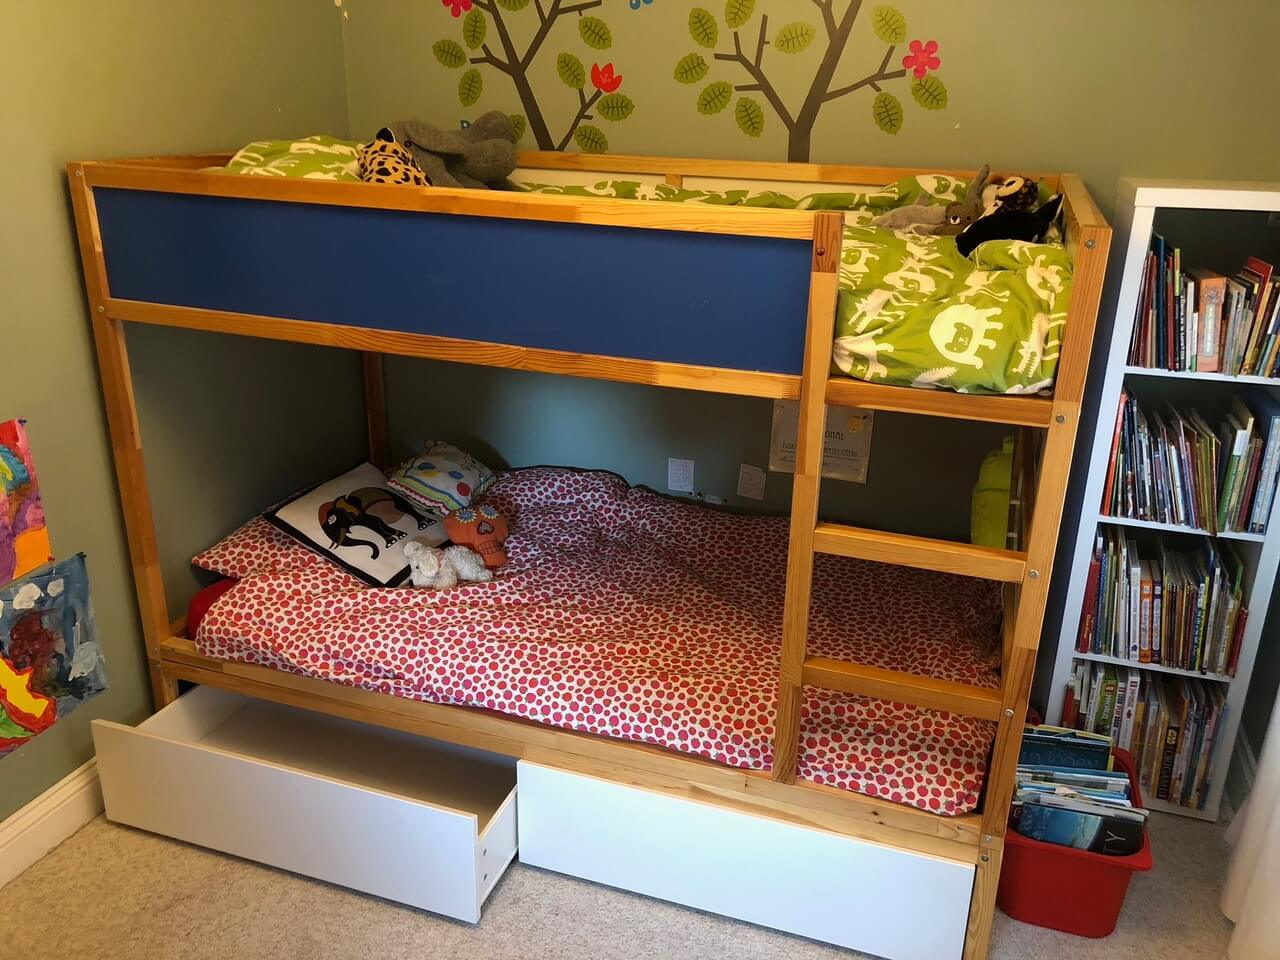 Full Size of Ikea Kura Bed Hack Storage Underneath Hacks Pinterest House Bunk Hacking The Into A With Hackers Wohnzimmer Kura Hack